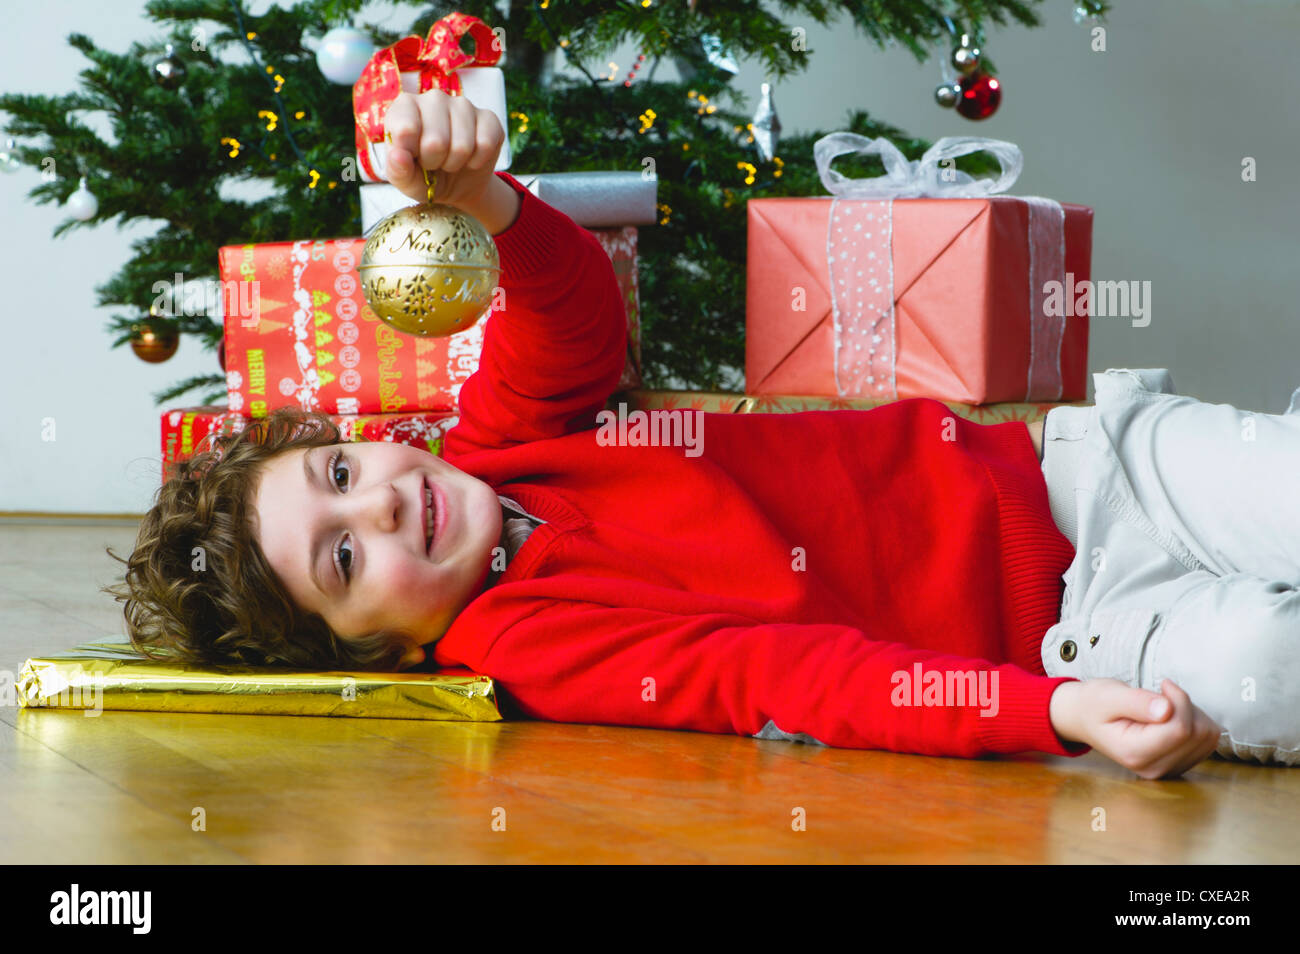 Boy lying on floor by Christmas Tree, holding up ornament Photo Stock